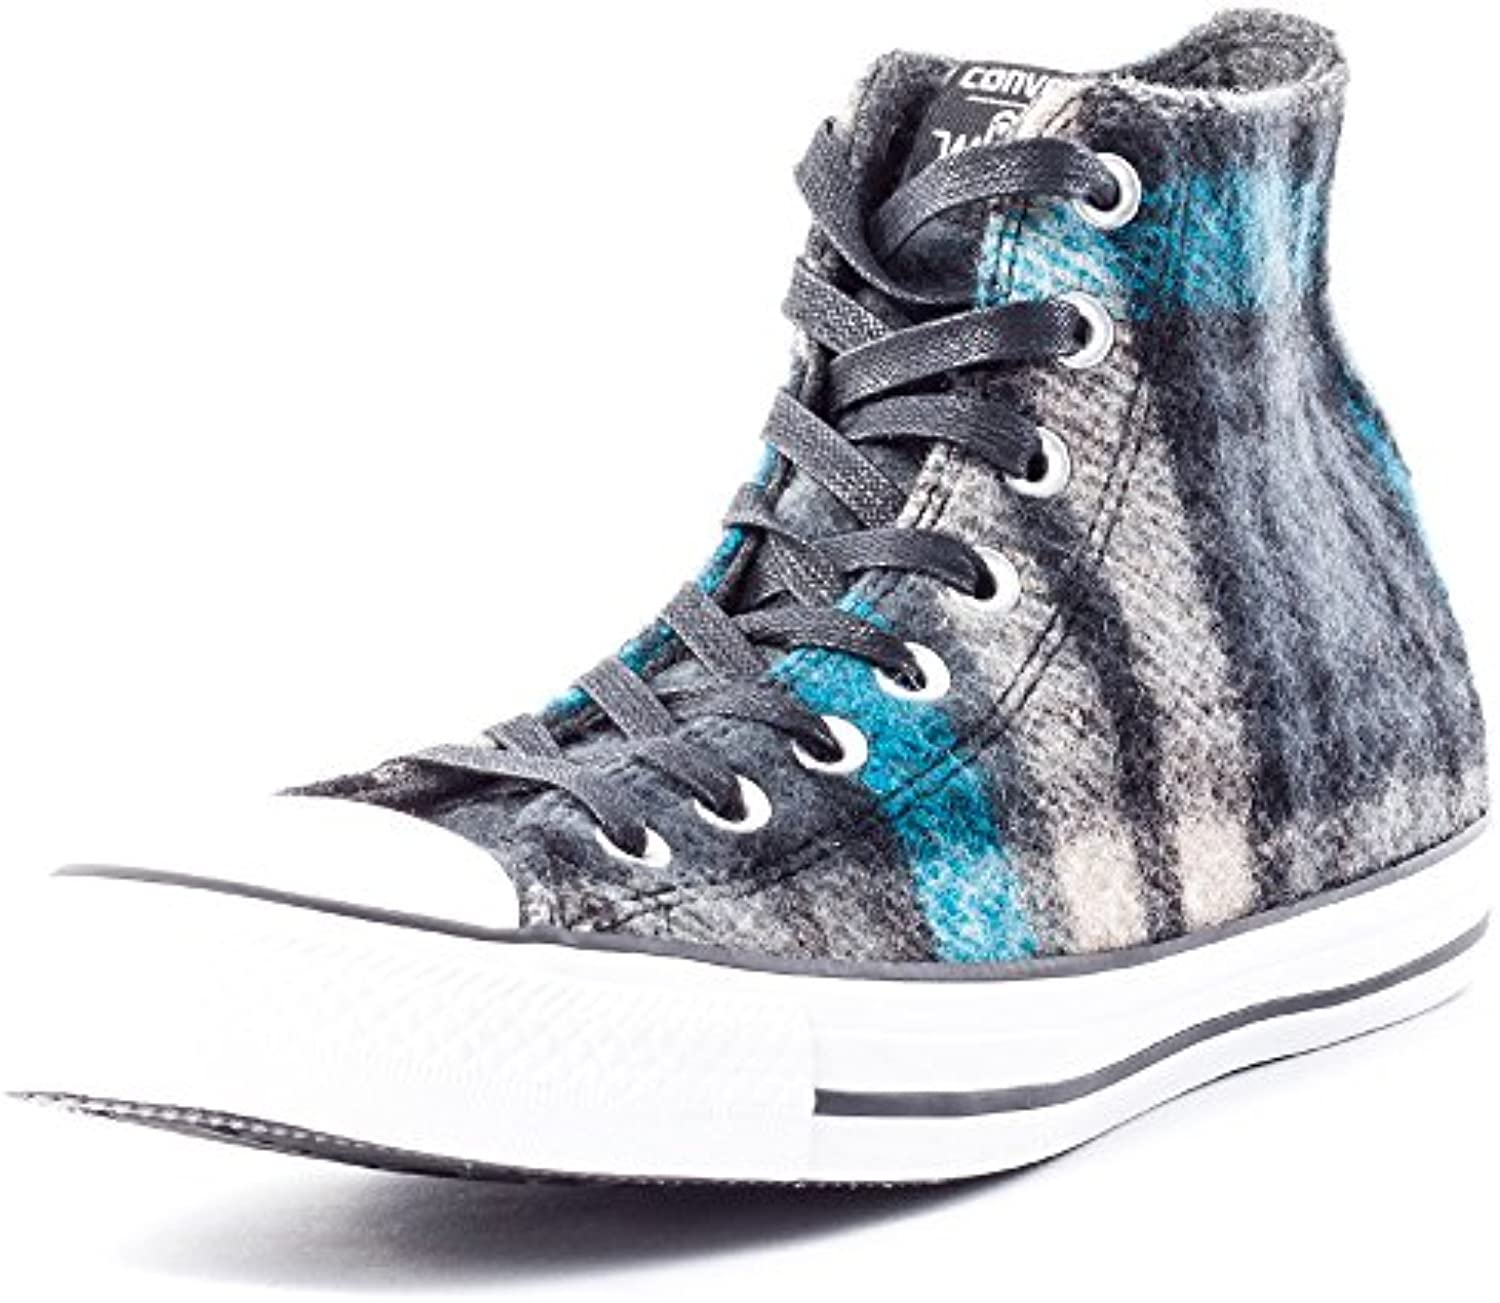 Converse All Star Woolrich Mens Wool Trainers Multicolor   41.5 EU